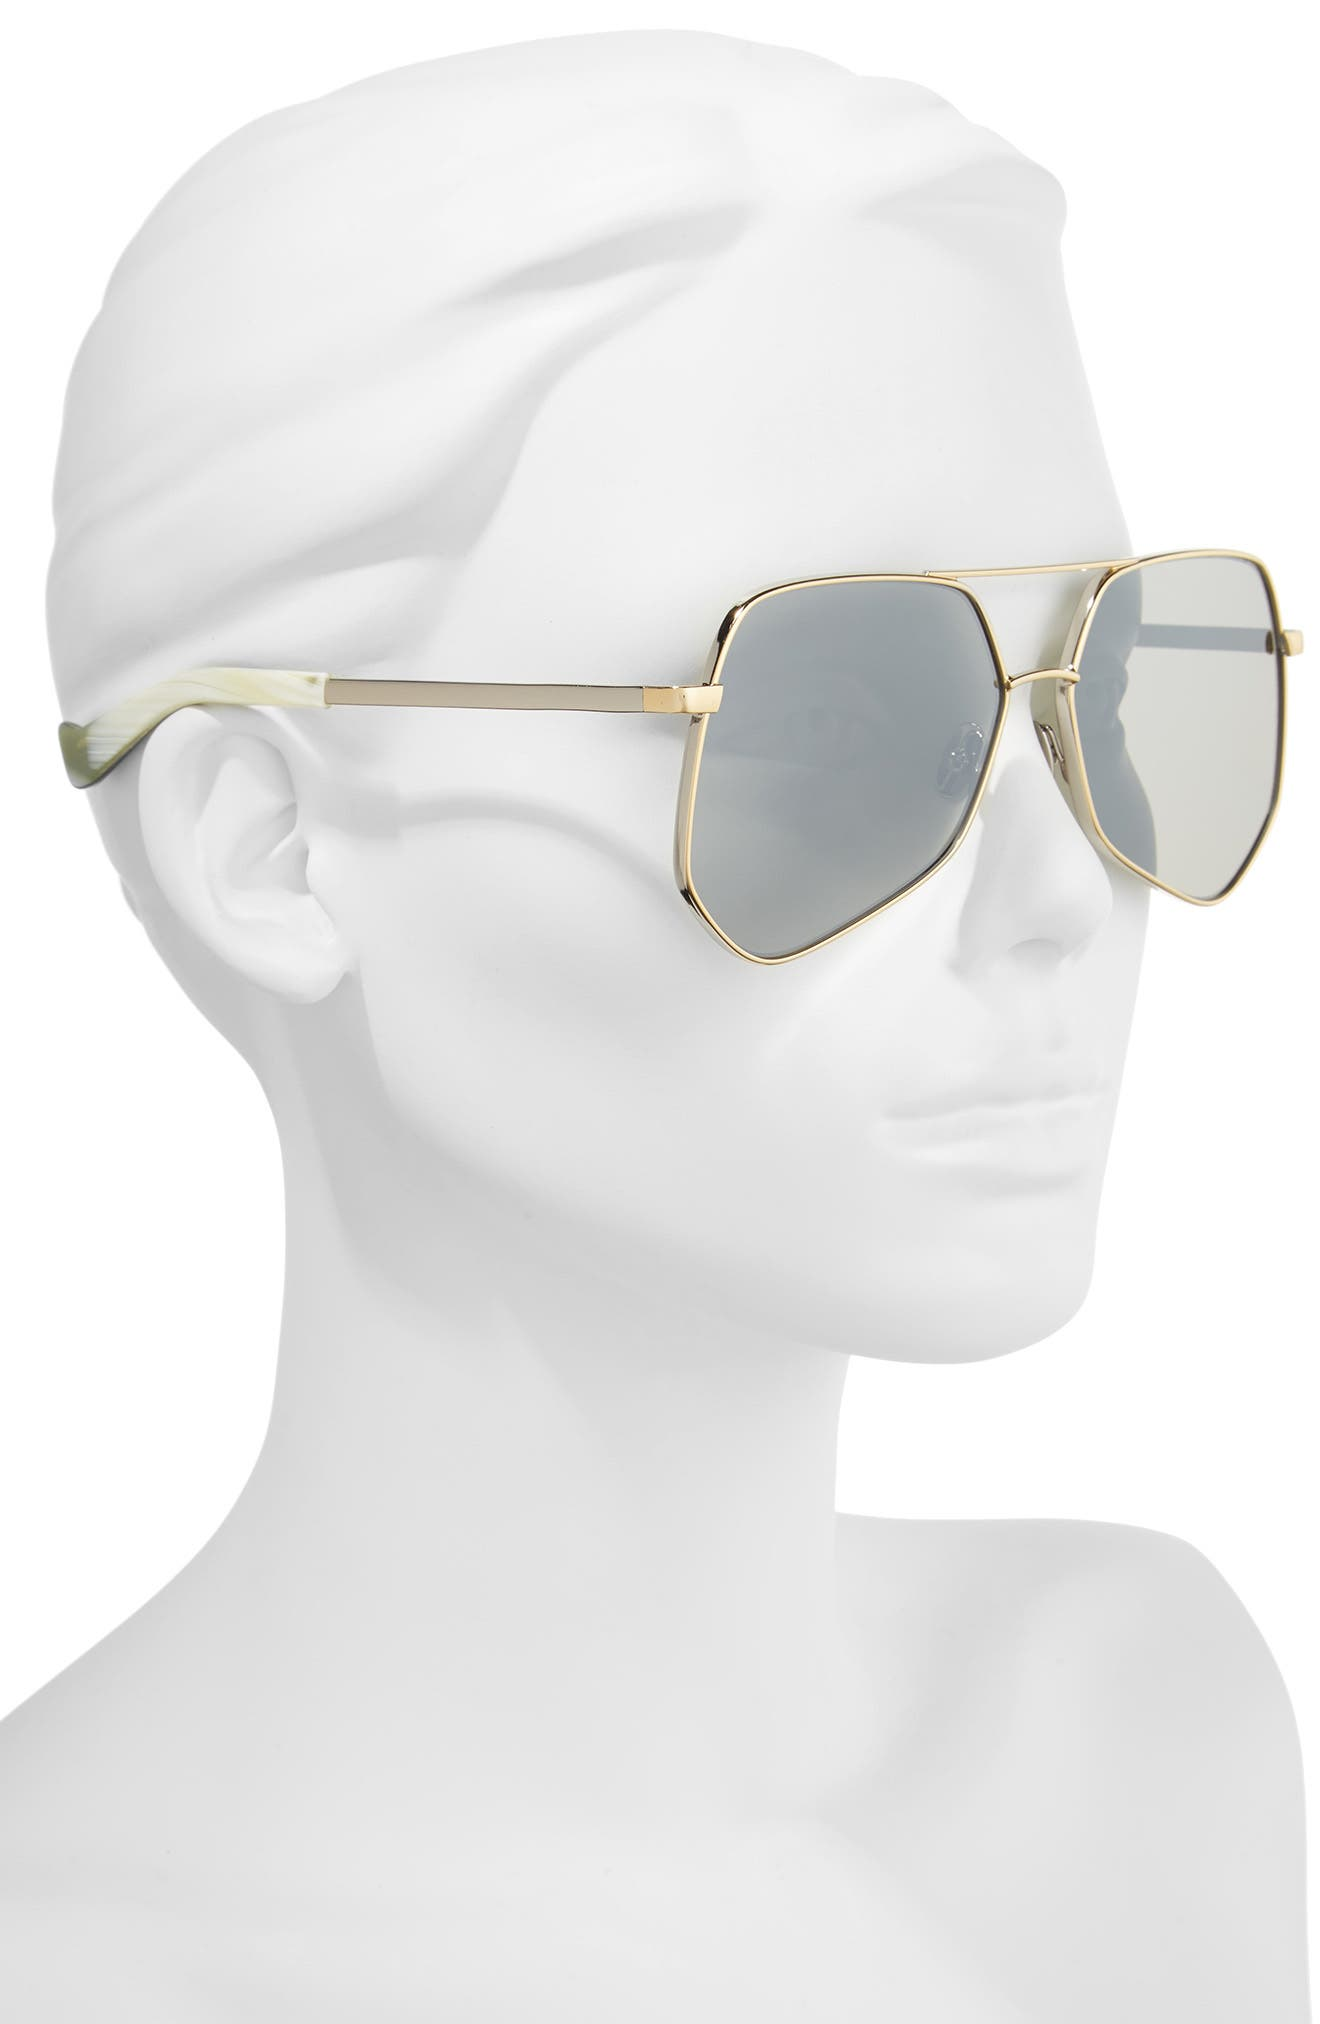 Megalast Flat 61mm Sunglasses,                             Alternate thumbnail 2, color,                             SILVER GOLD/ SILVER